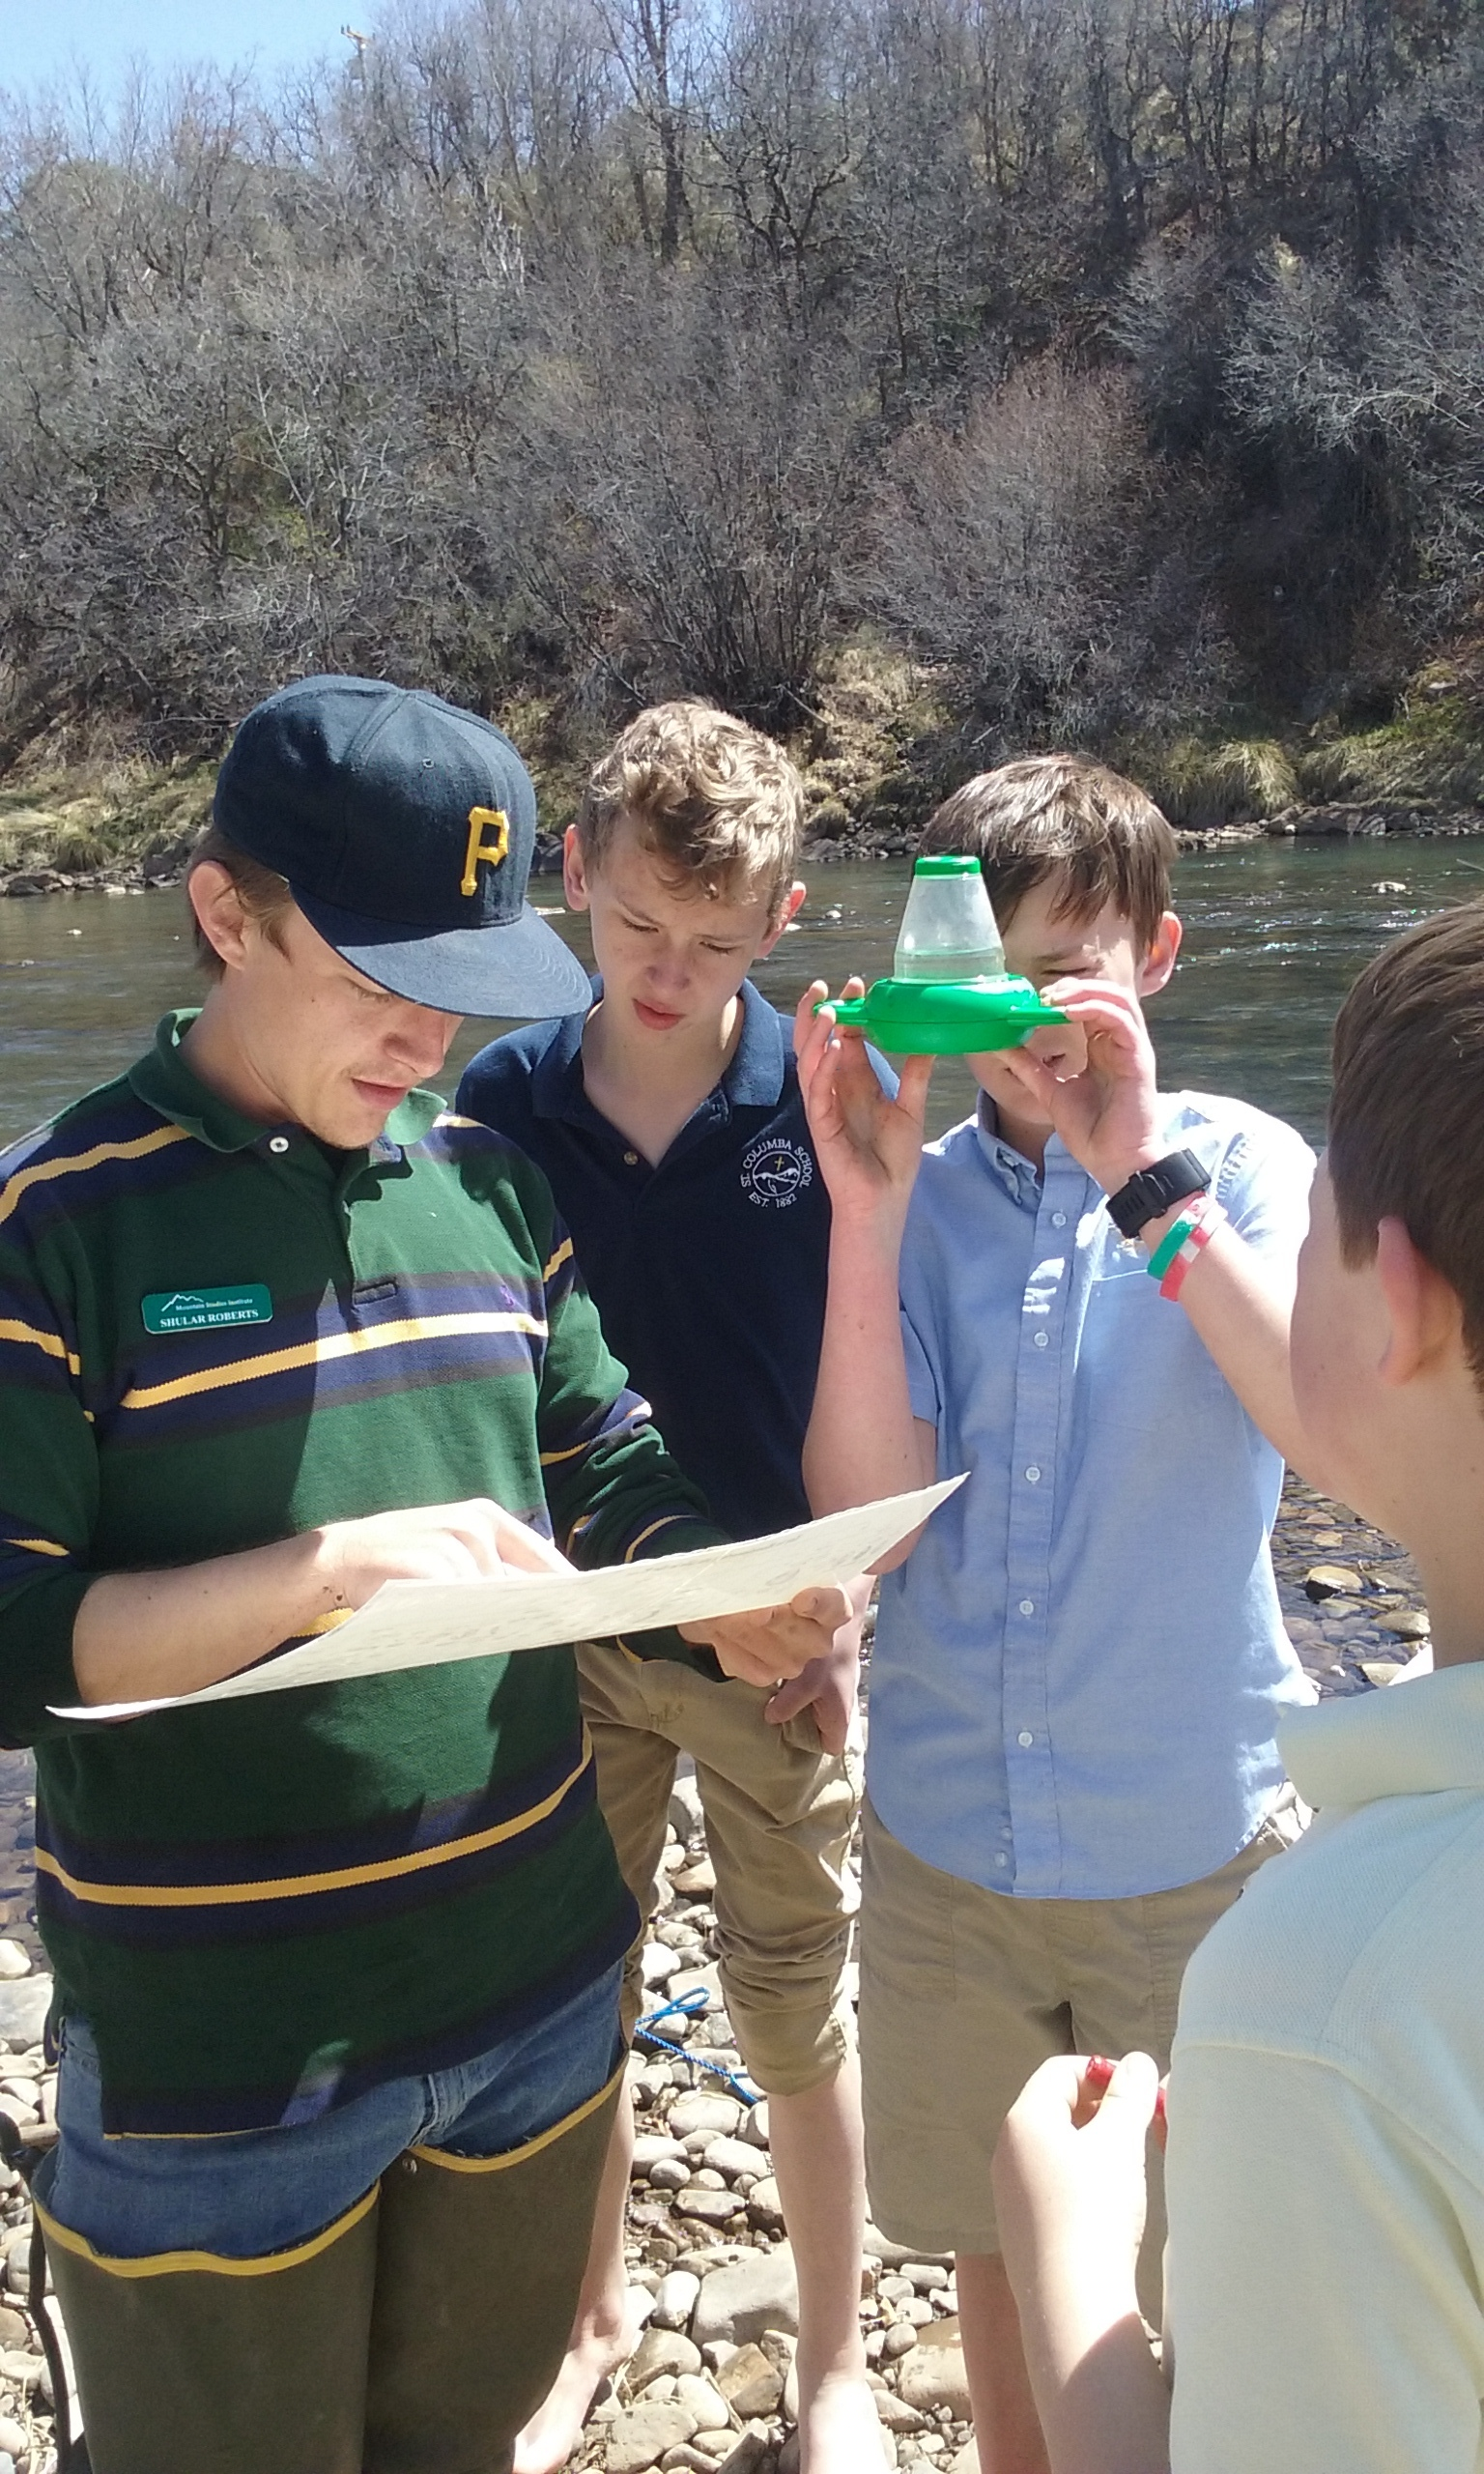 MSI's 2018 VISTA Shular Roberts works with students to identify macro-invertebrates in the local river.